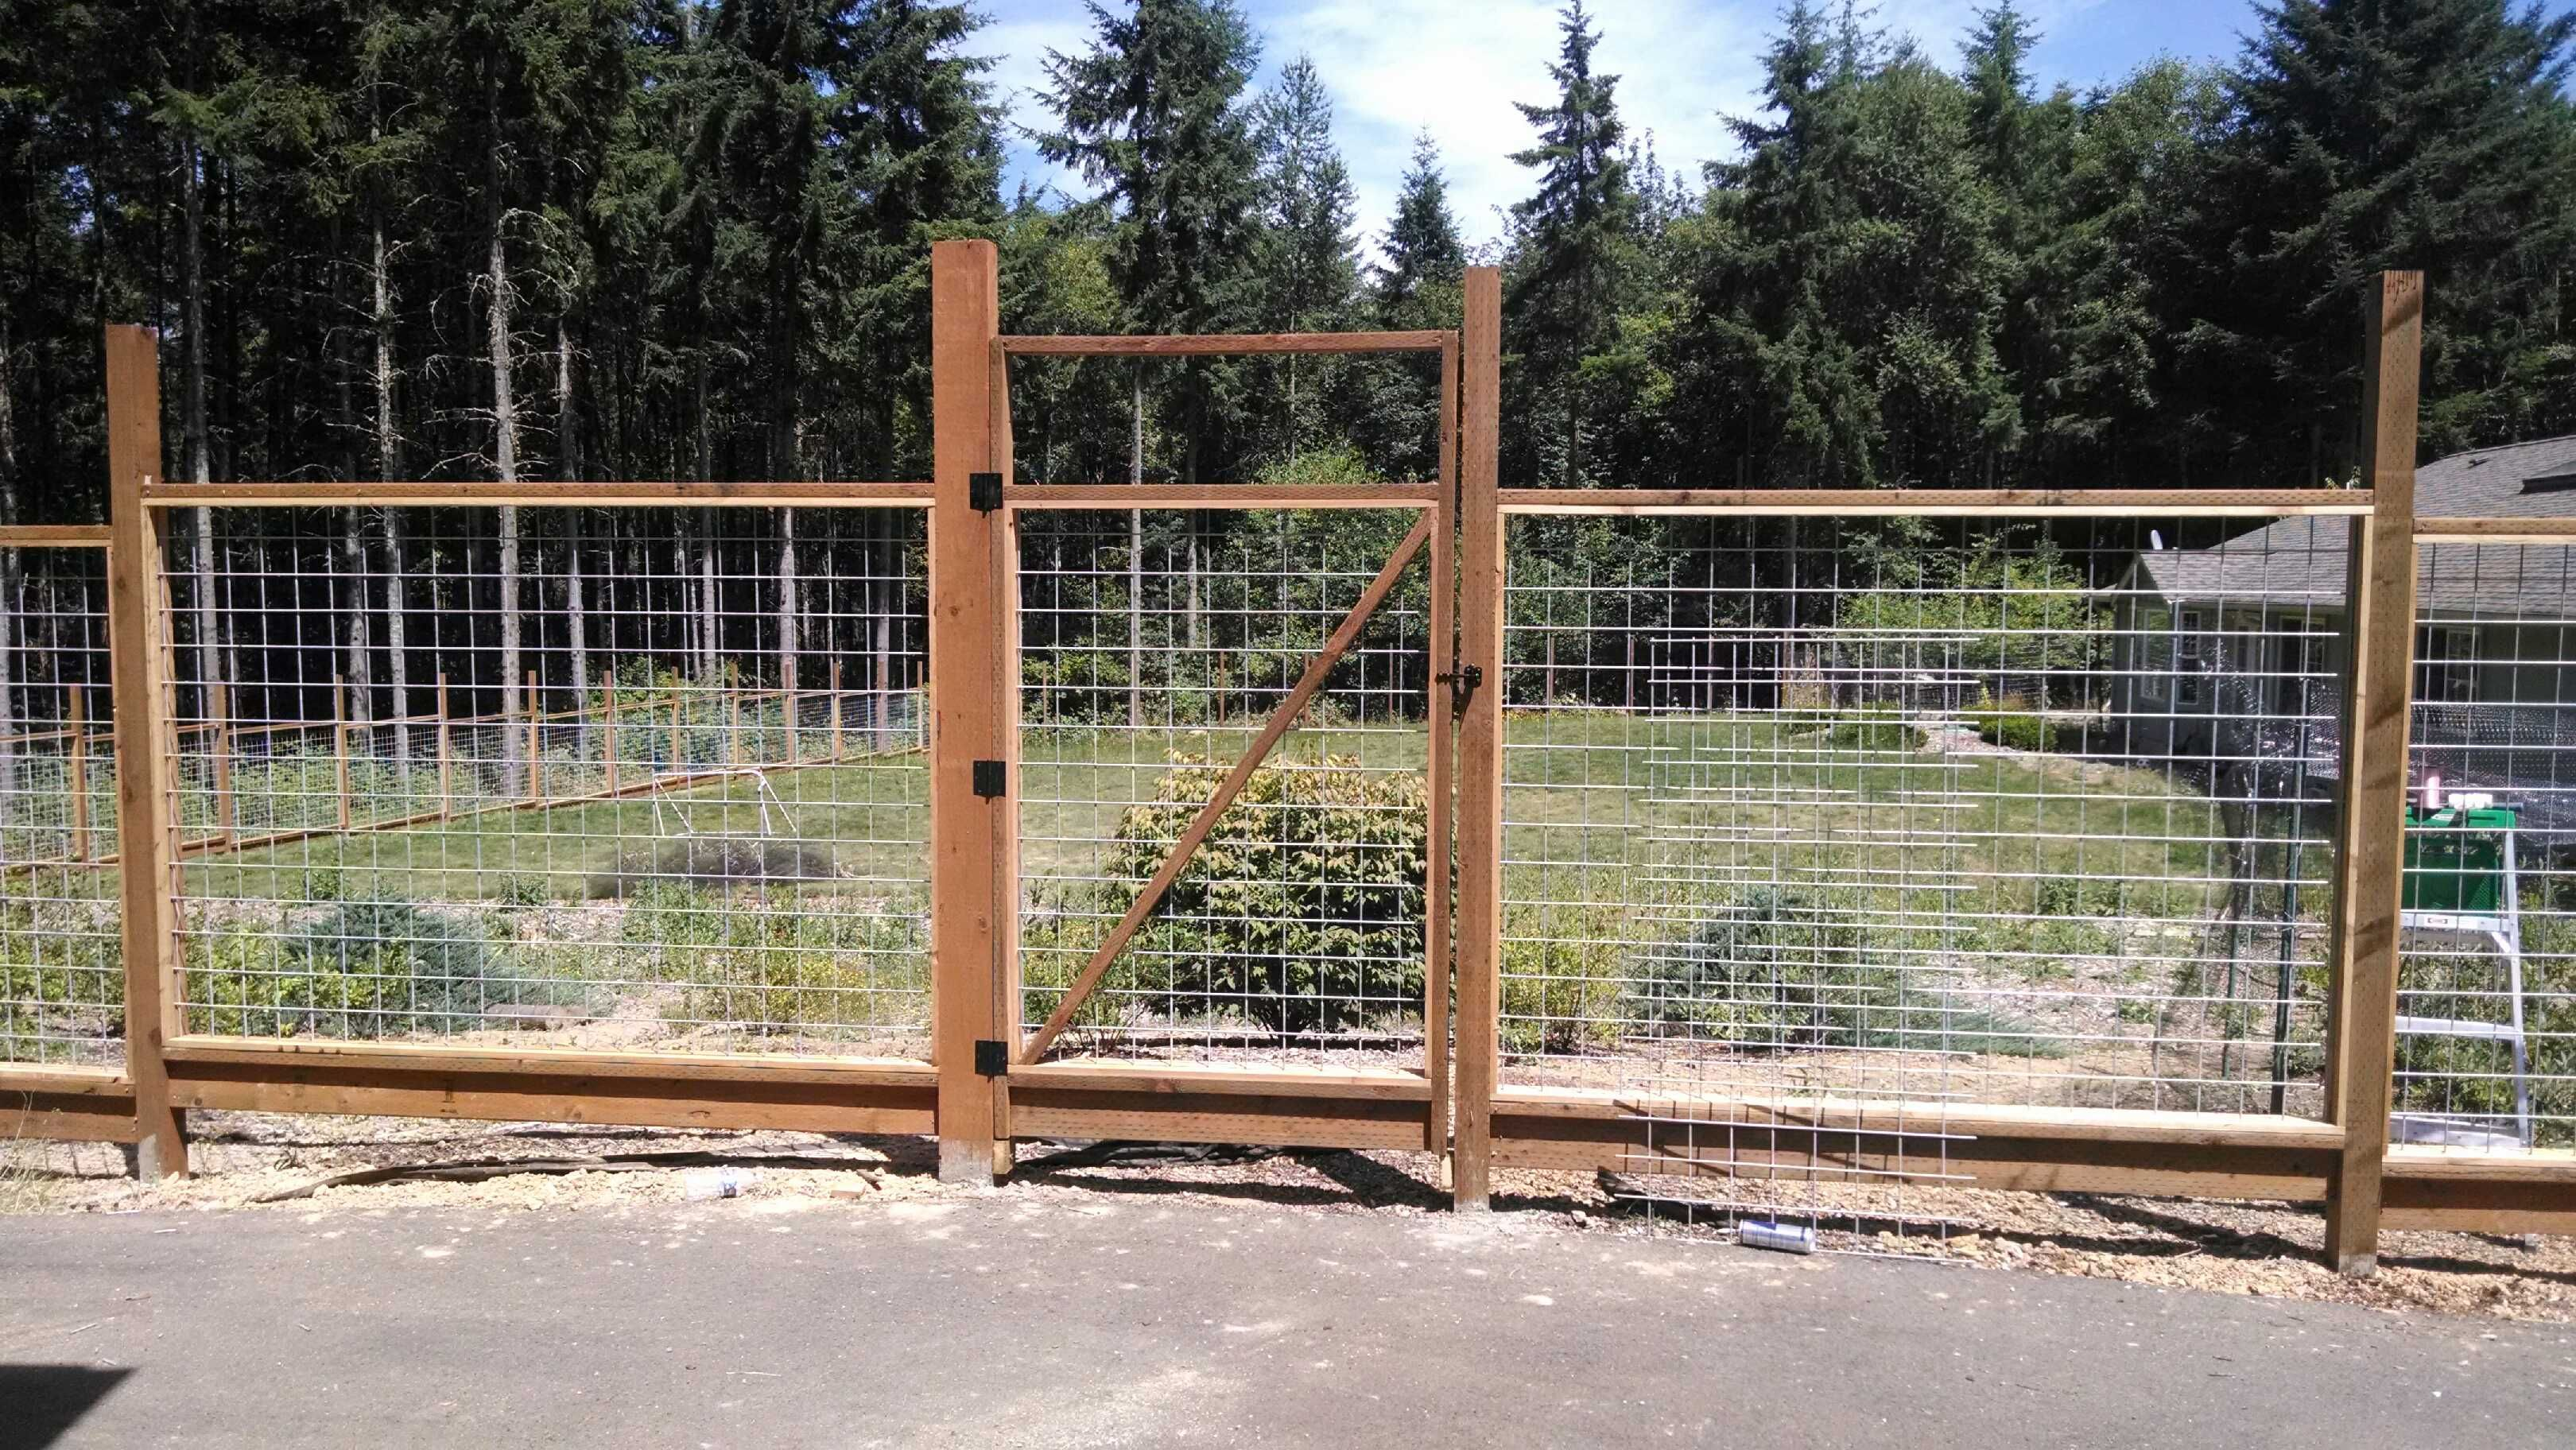 6 Ft Welded Wire Fence With Walk Gate Under Construction Wire Fence Fence Design Welded Wire Fence